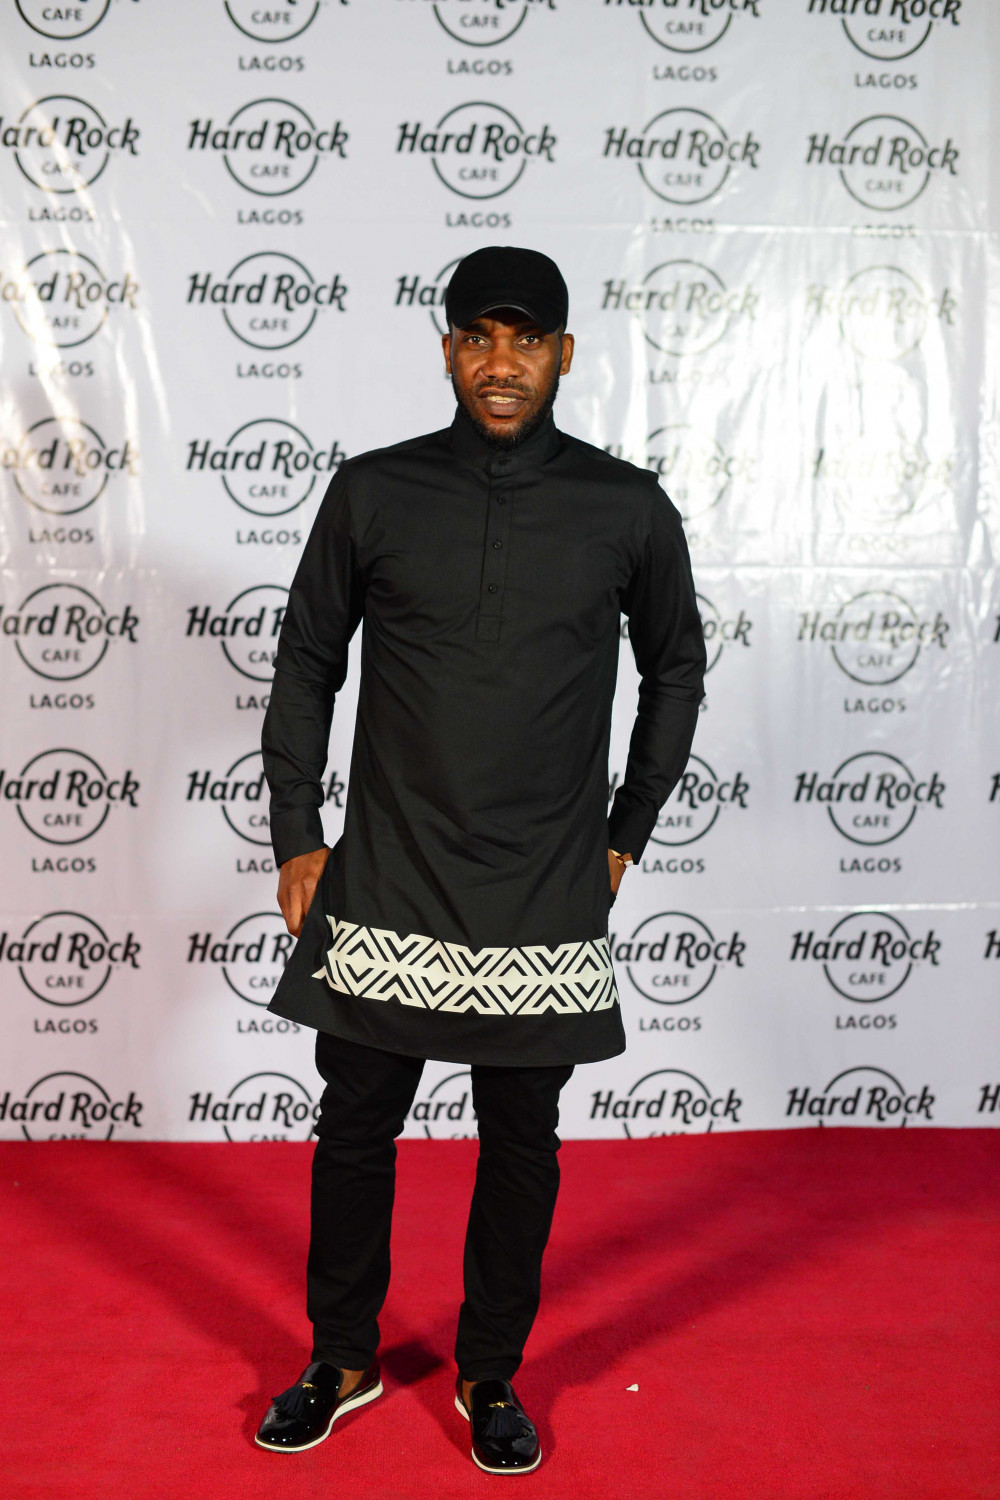 Hard Rock Cafe Lagos Launch BellaNaija Jay Jay Okocha.